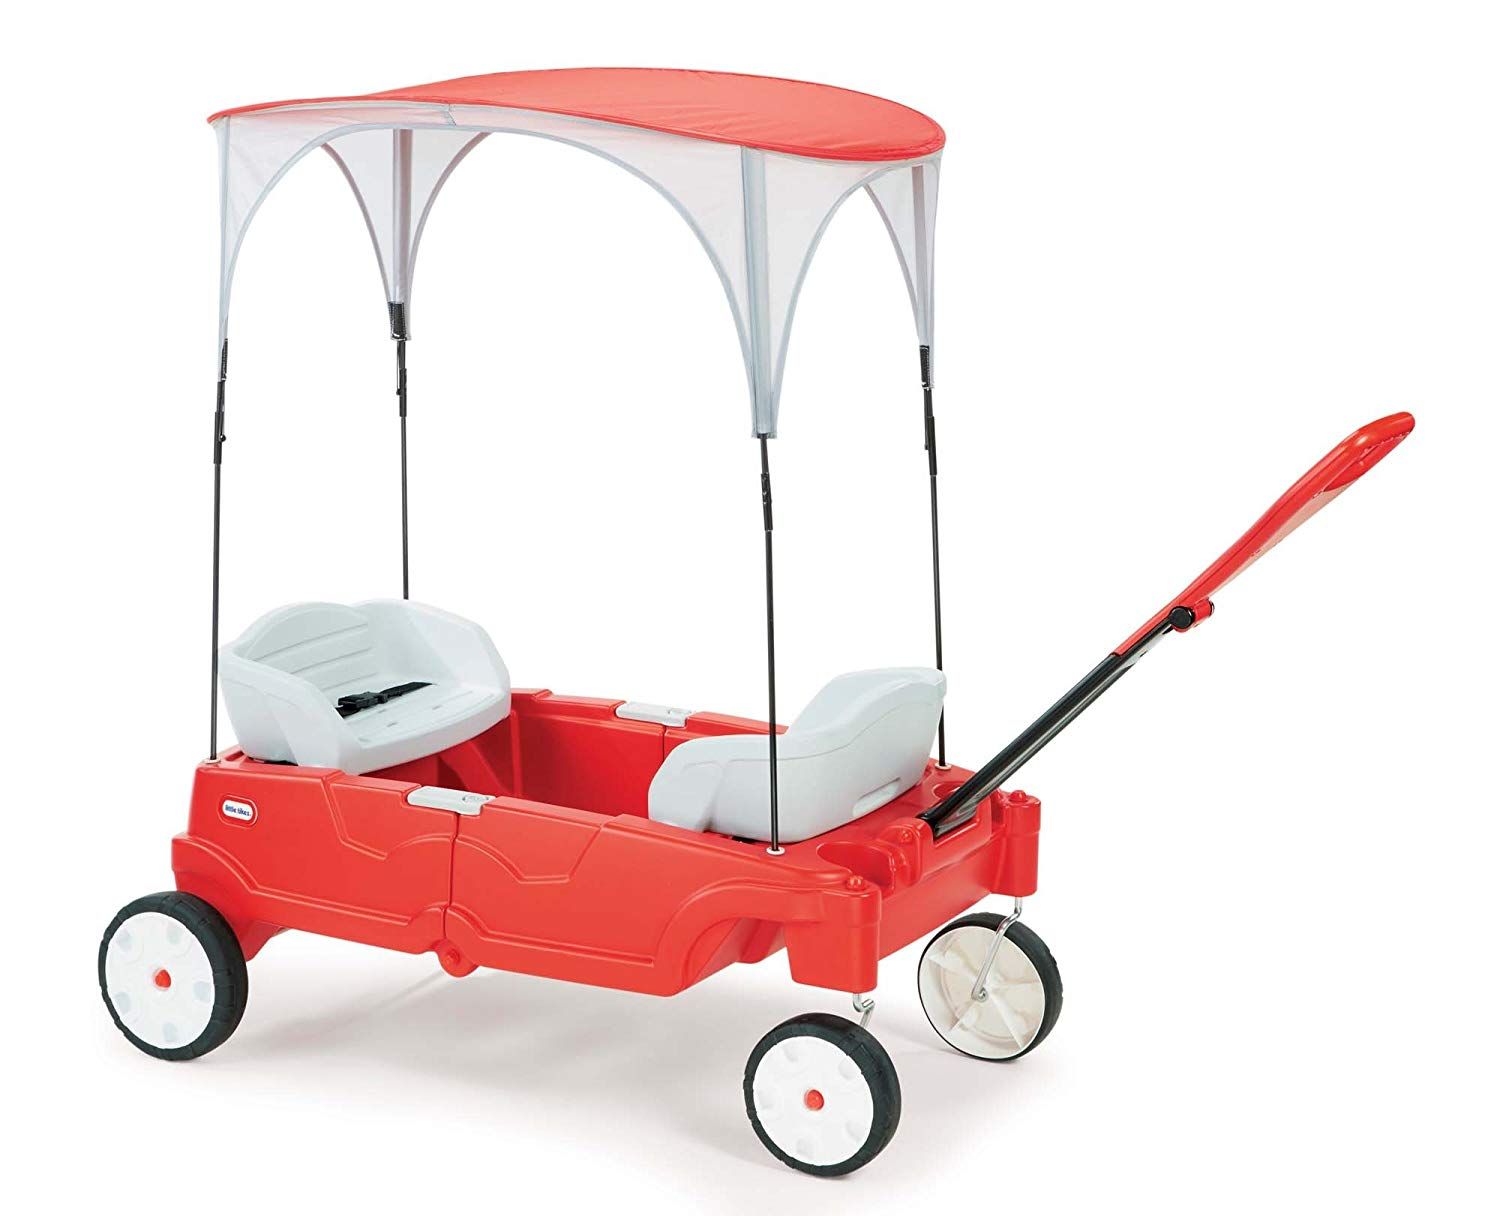 Little Tikes Fold 'n Go Deluxe Folding Wagon